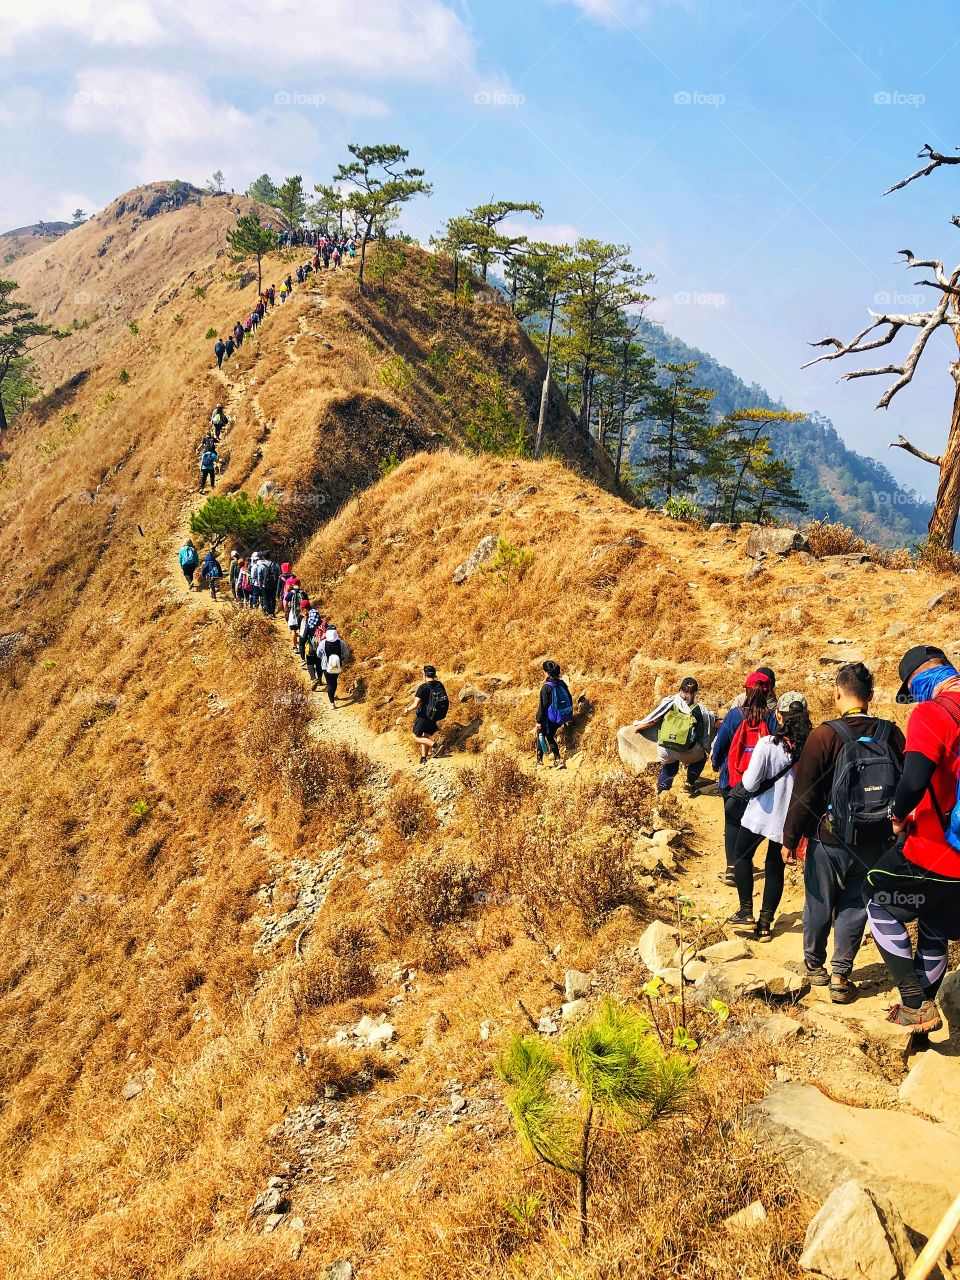 Mt. Ulap is a long hike compared to your usual one. You need more than just strength and stamina to climb up and go down, you need patience. Ulapshouldn't be that hard for experienced hikers and mountaineers. I survived Mt. Ulap! ⛰️💪 (1846 MASL)